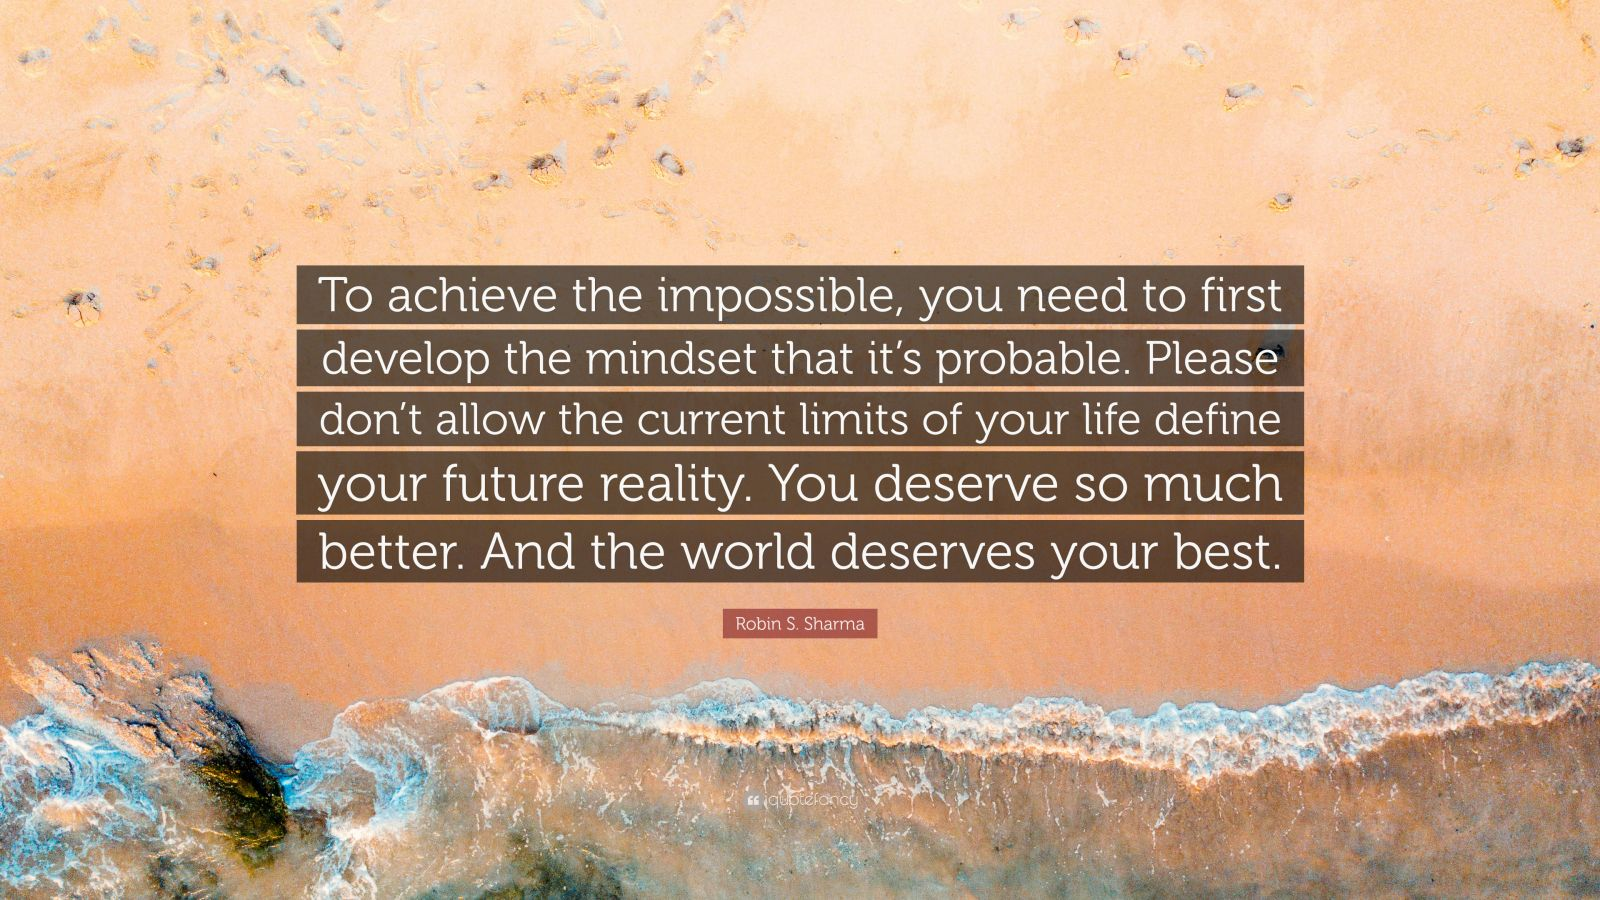 """Robin S. Sharma Quote: """"To achieve the impossible, you need to first develop the mindset that it's probable. Please don't allow the current limits of your life define your future reality. You deserve so much better. And the world deserves your best."""""""